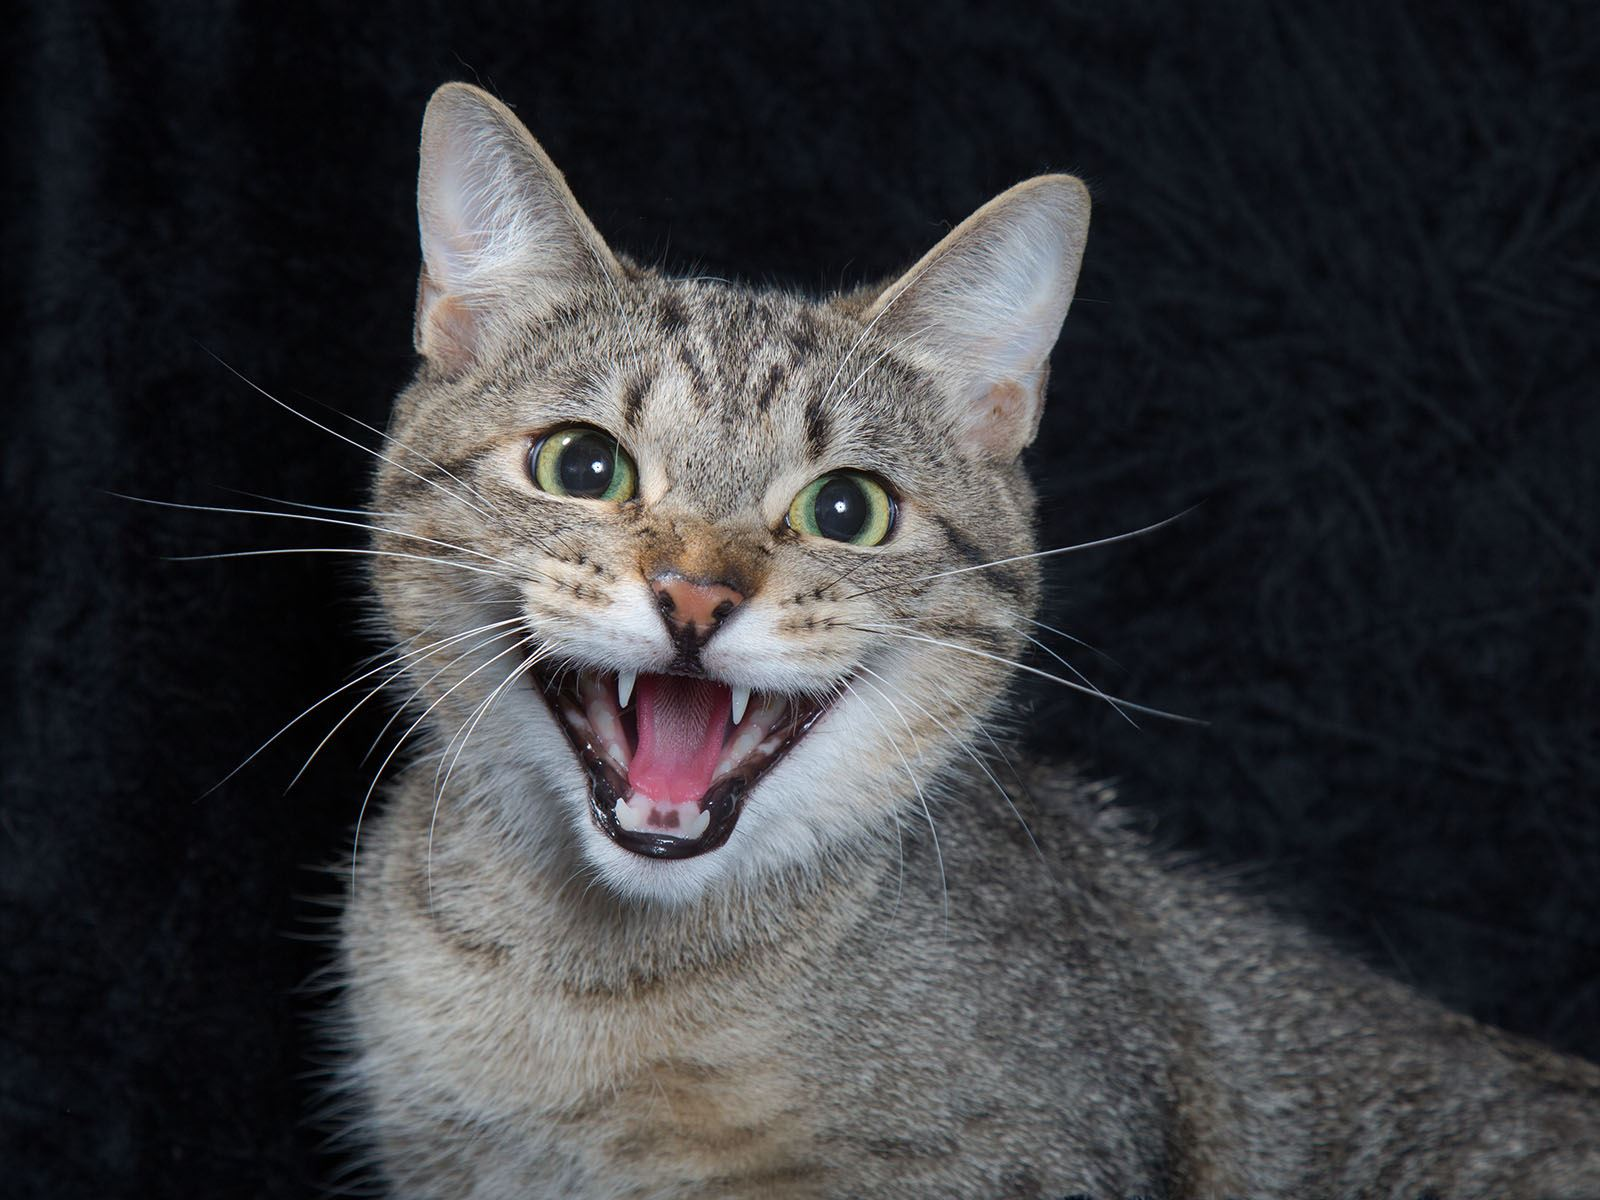 A portrait of a tabby cat hissing in front of a black background.